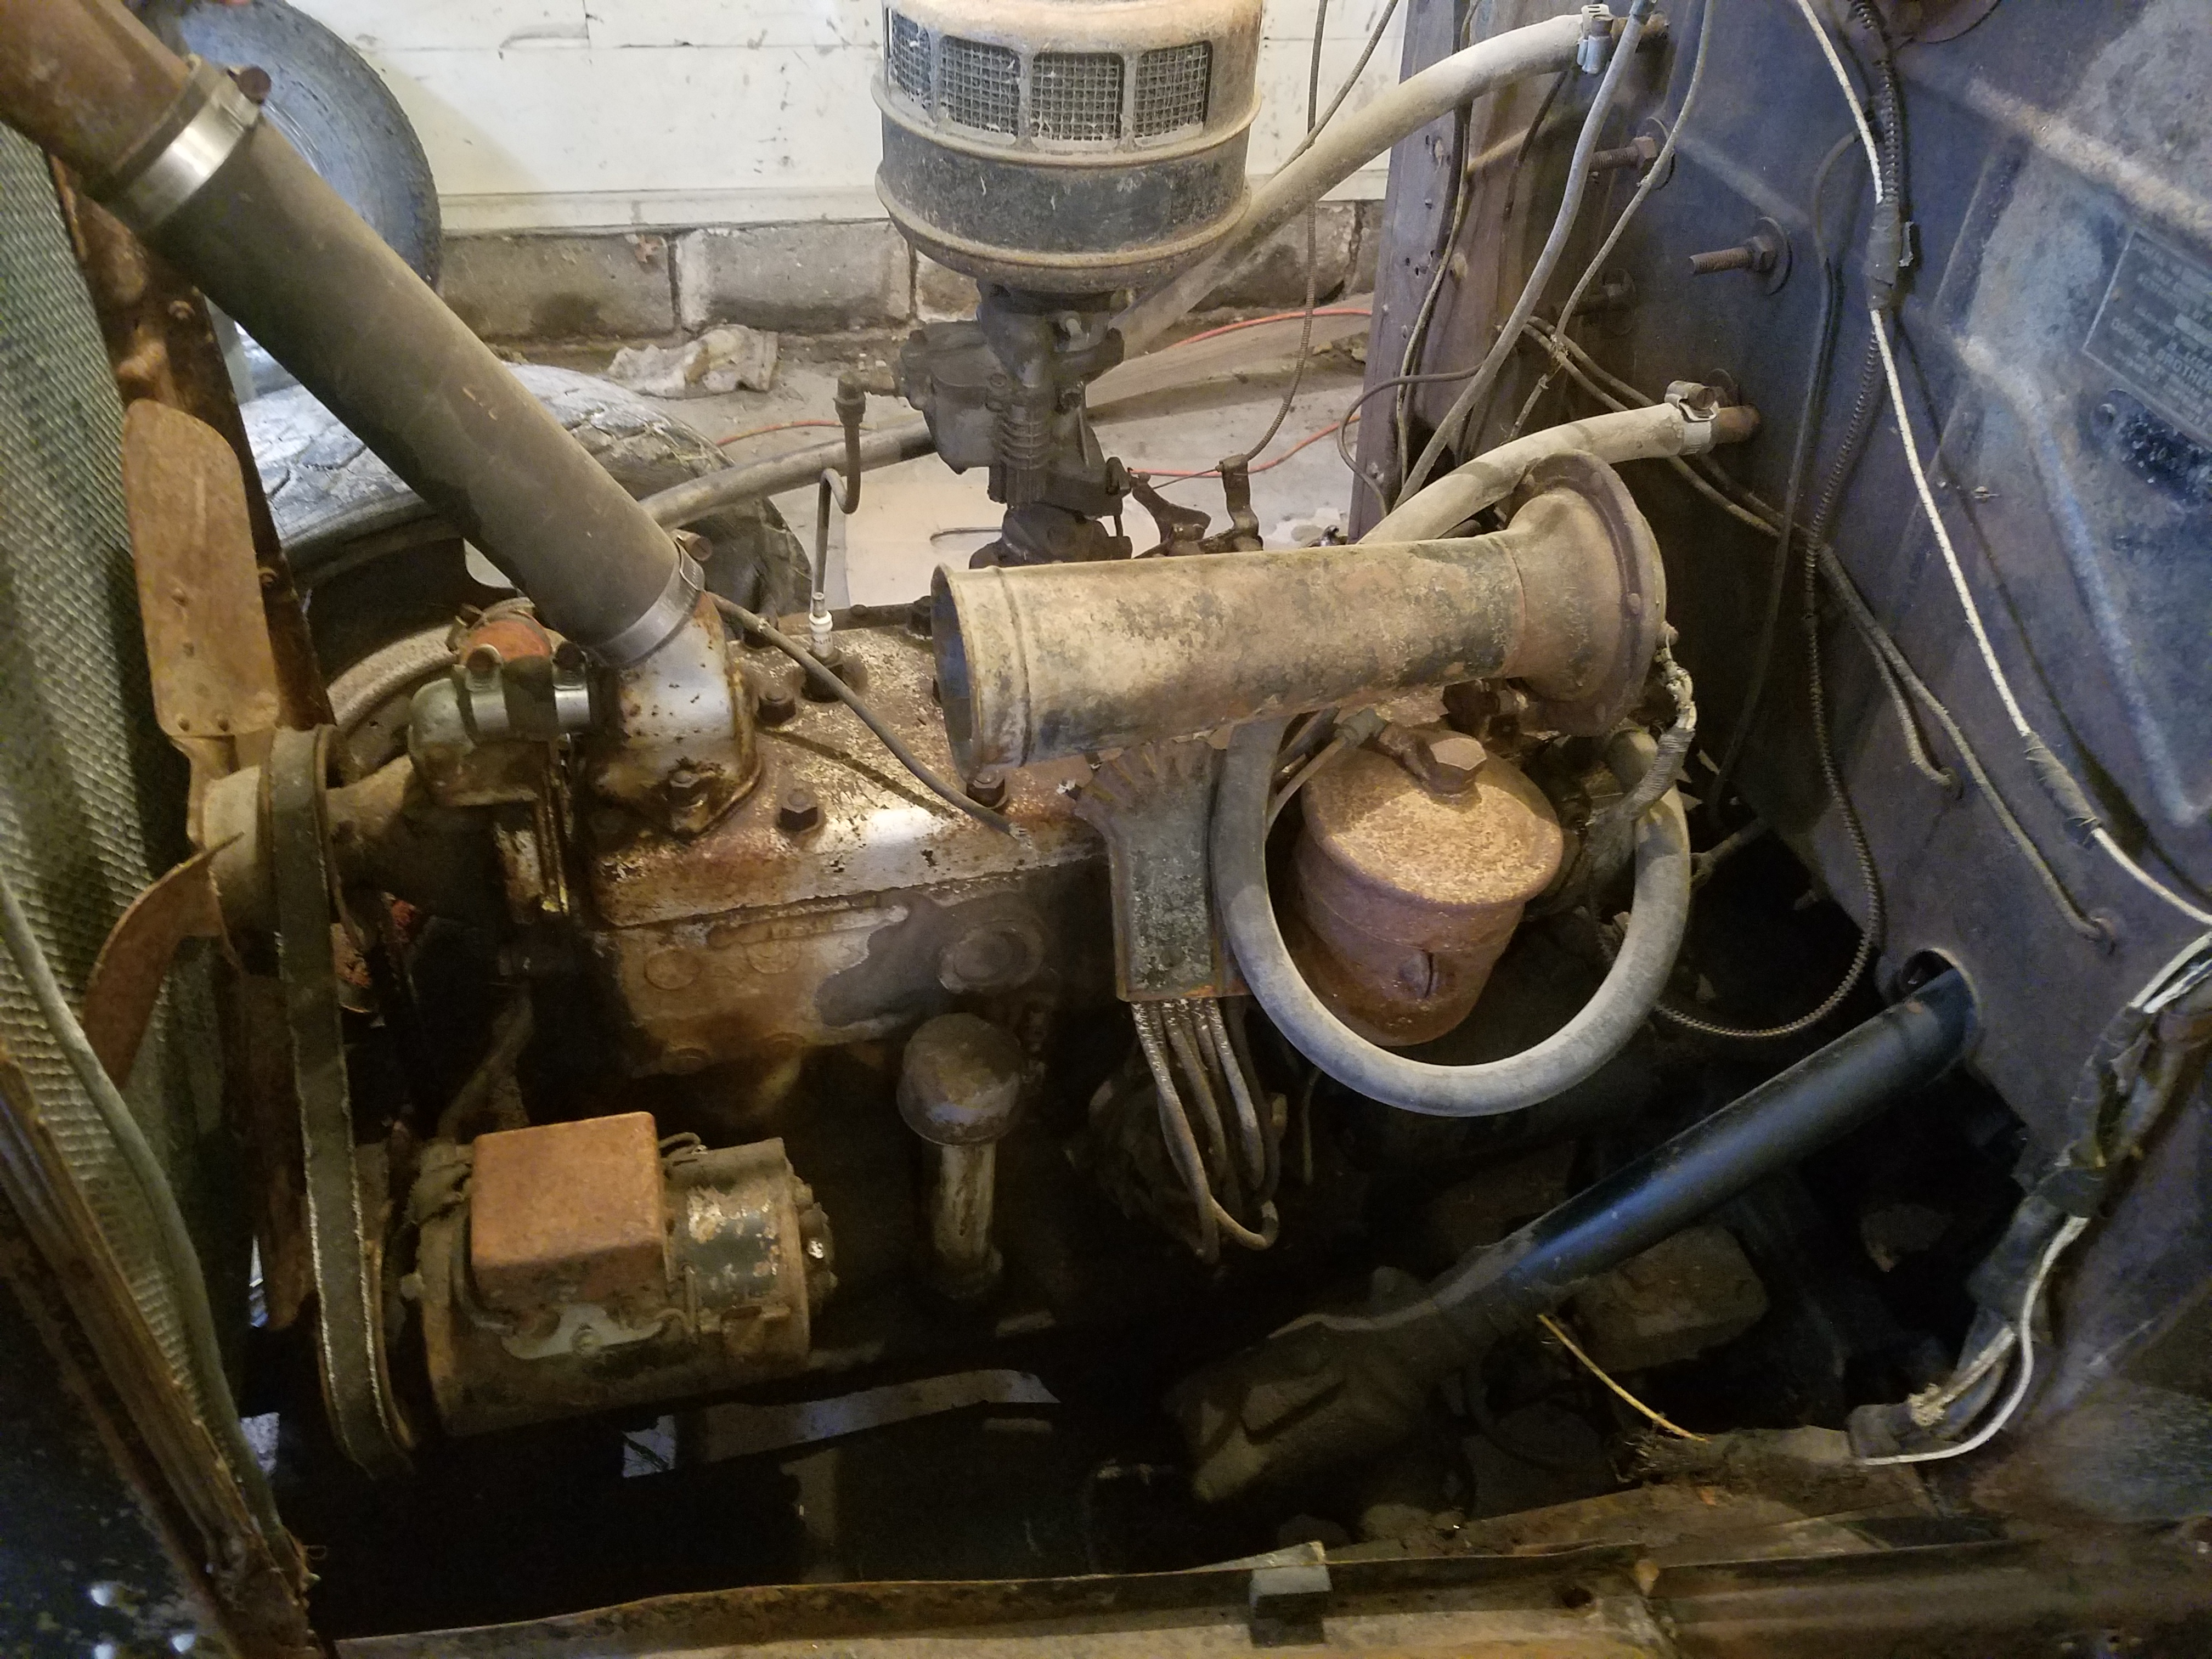 Plymouth flathead 6 for sale